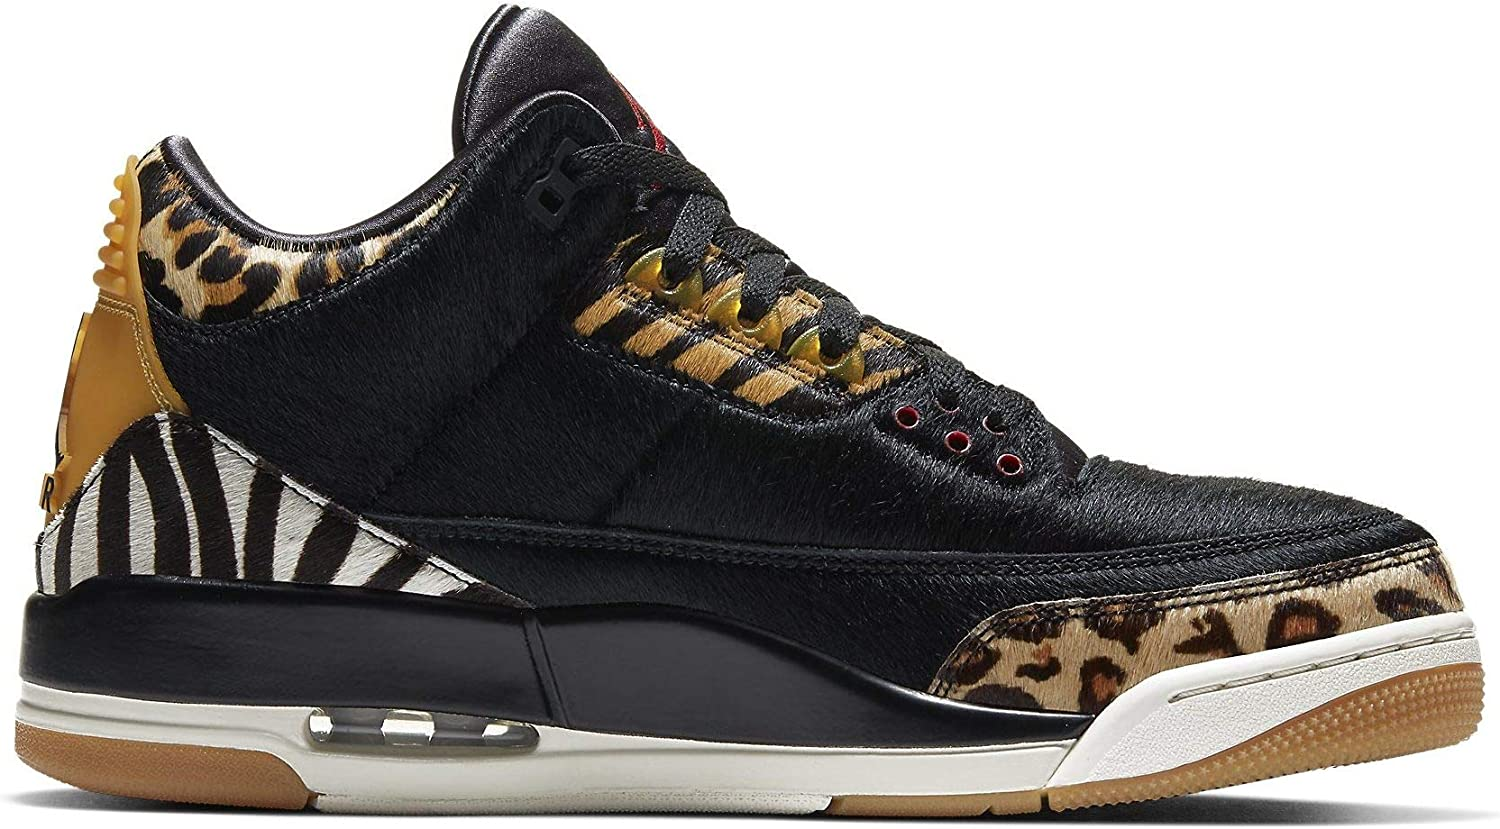 Air Jordan 3 Retro SE 'Animal Instinct'